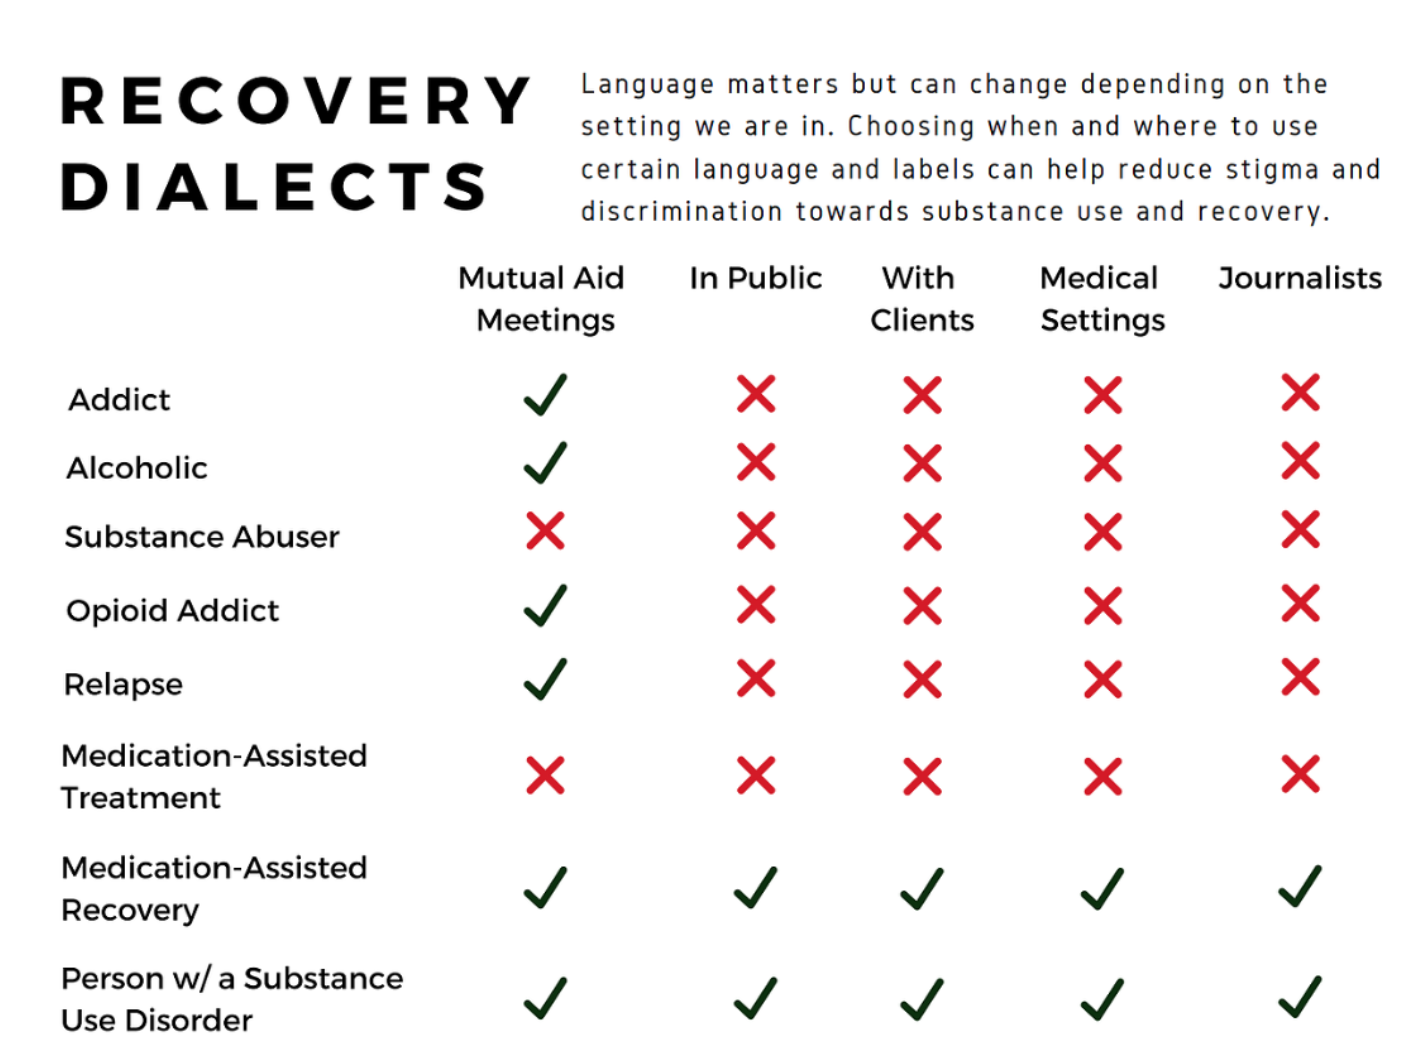 Language Use in Media - Changing the Narrative is a resource created by journalists, lawyers, doctors, and advocates for the purpose of supporting accurate, evidence-based media coverage of issues related to substance use. Although this resource targets journalists, it is helpful for anyone thinking through language and stigma.